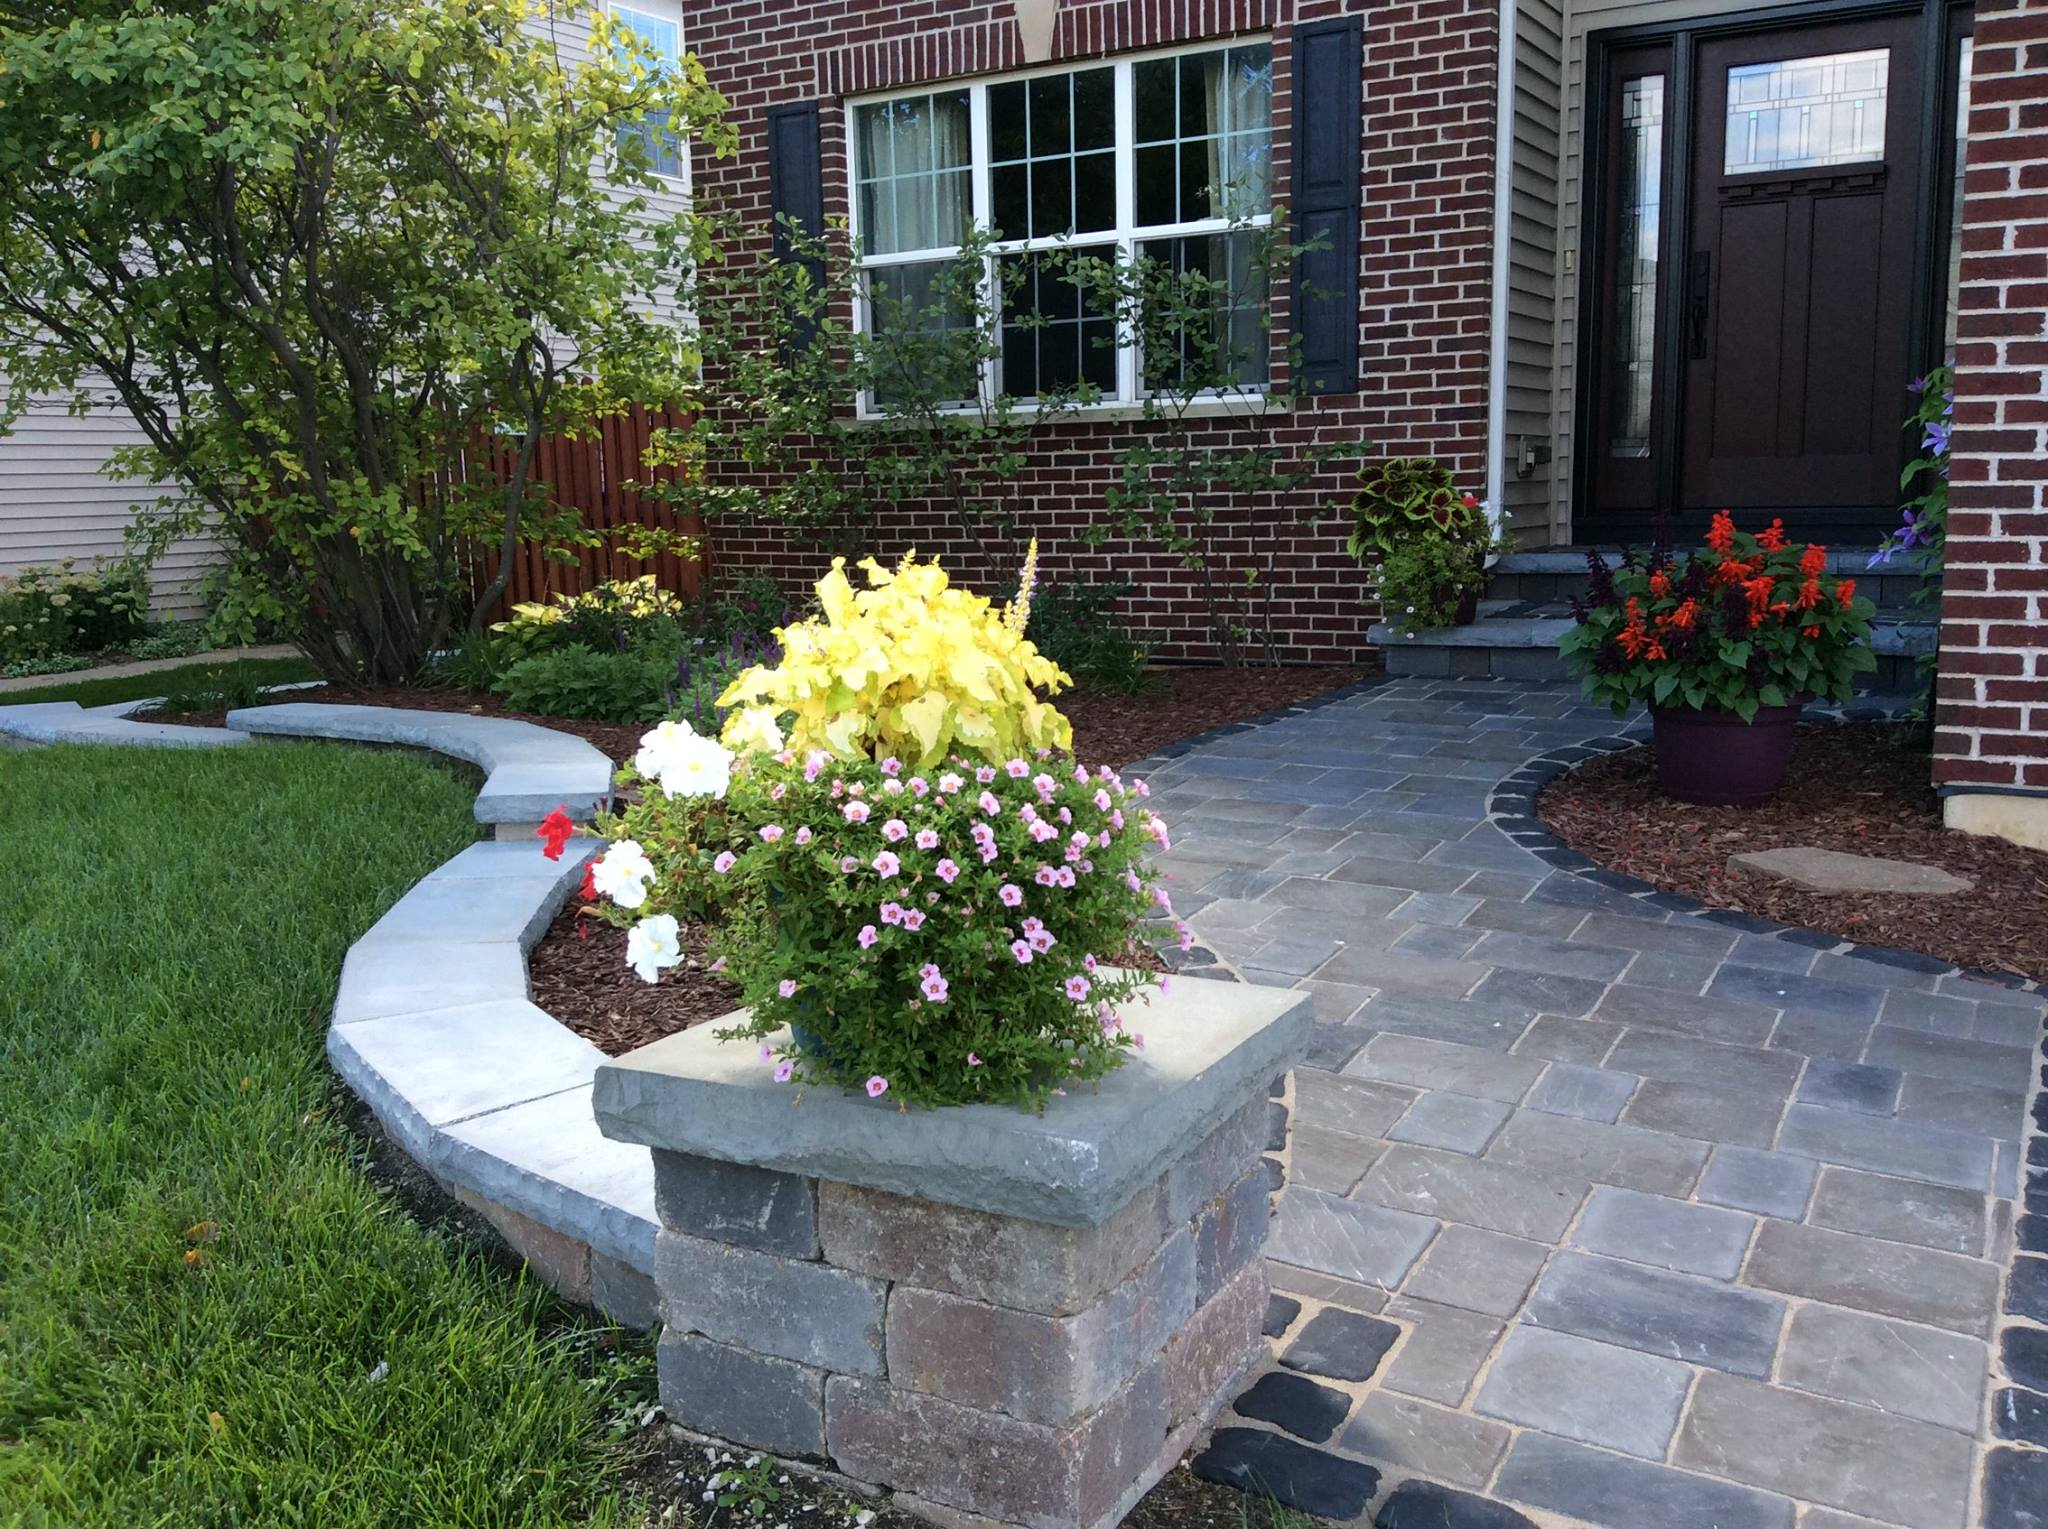 Landscaping improved with flowers in Oak Brook, IL